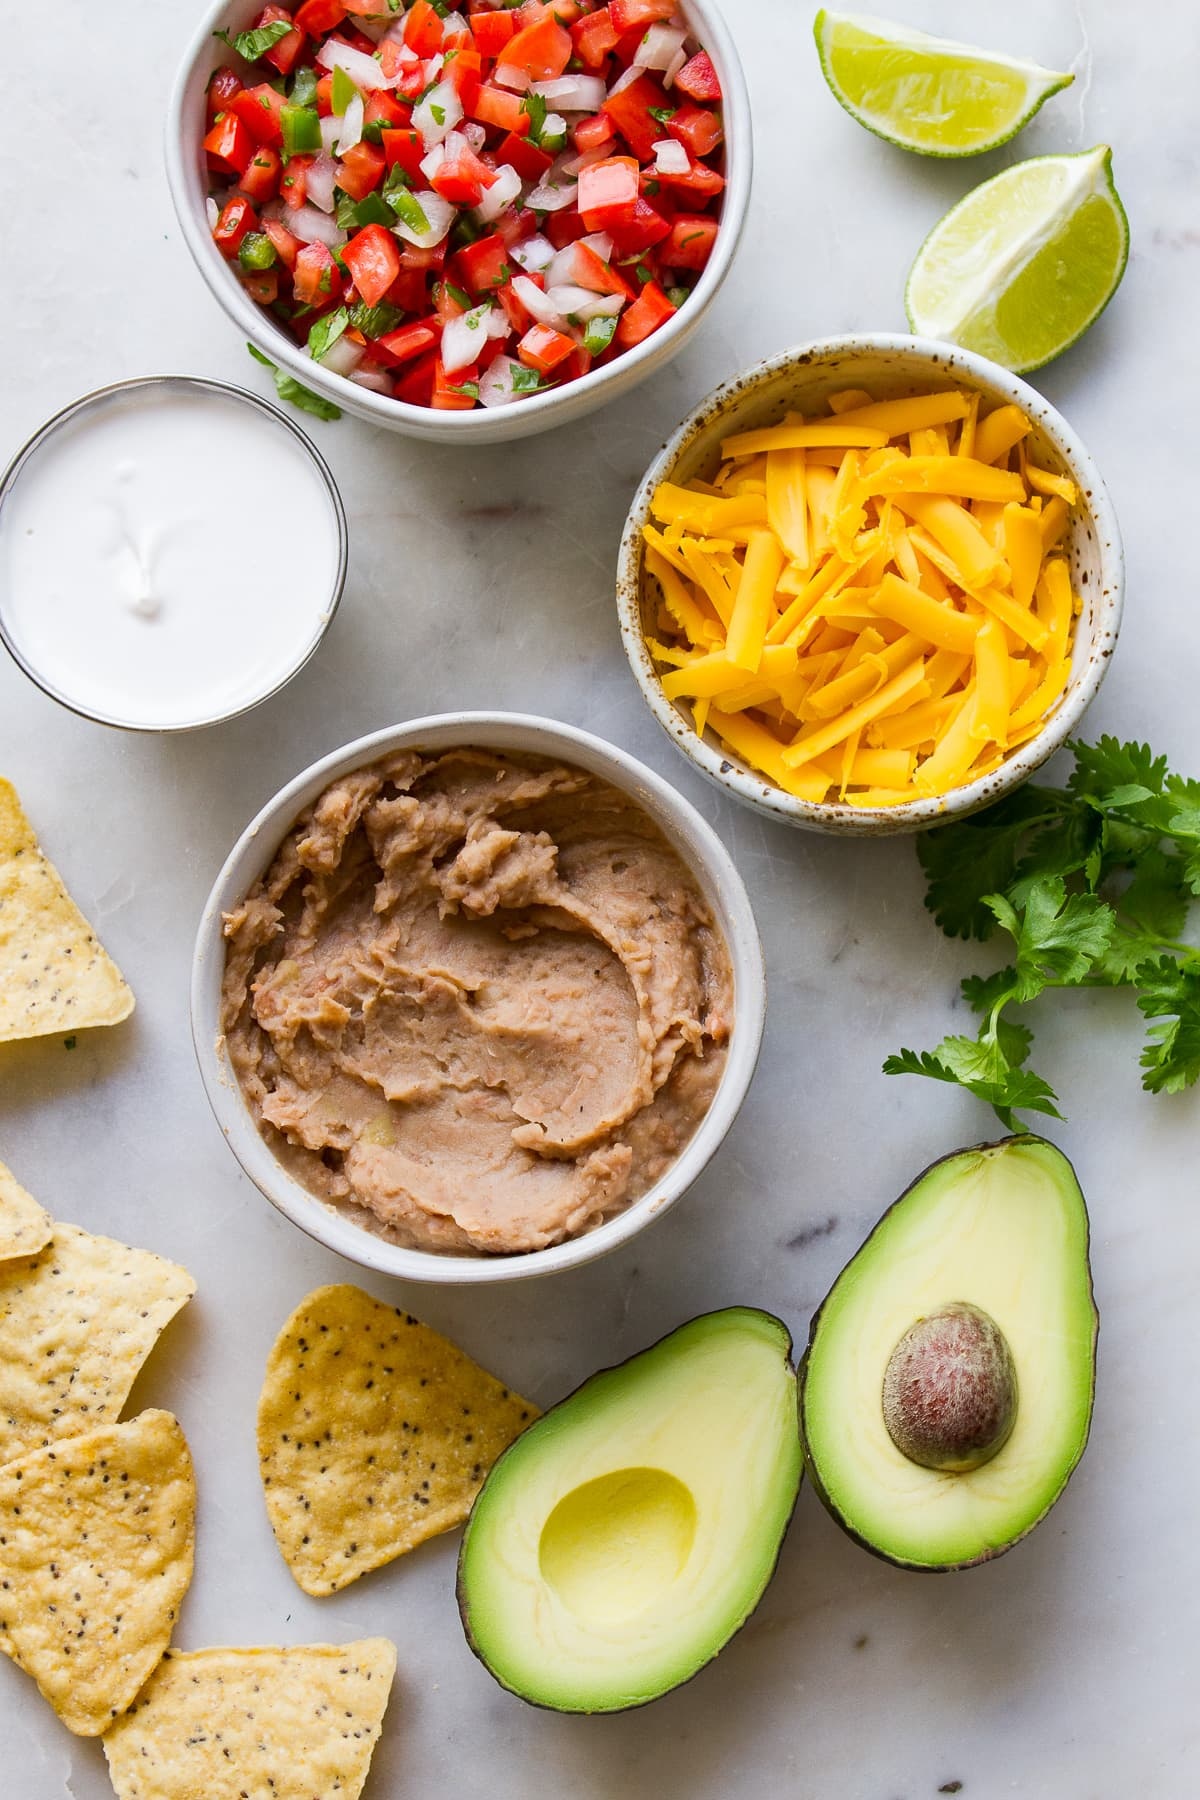 top down view of ingredients to make nacho bowls.